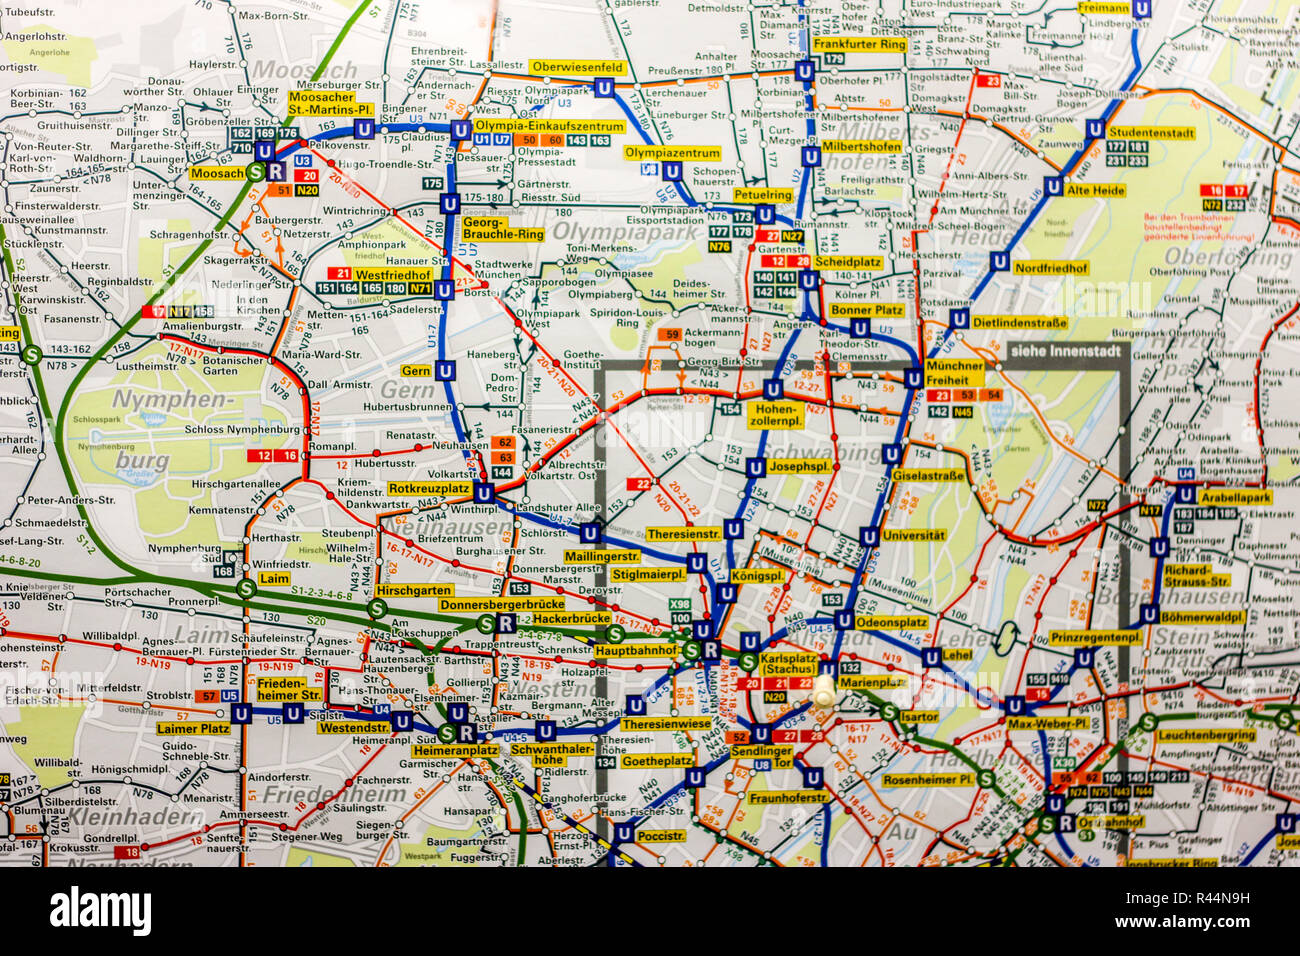 Munich Subway Map.U Bahn Map Stock Photos U Bahn Map Stock Images Alamy